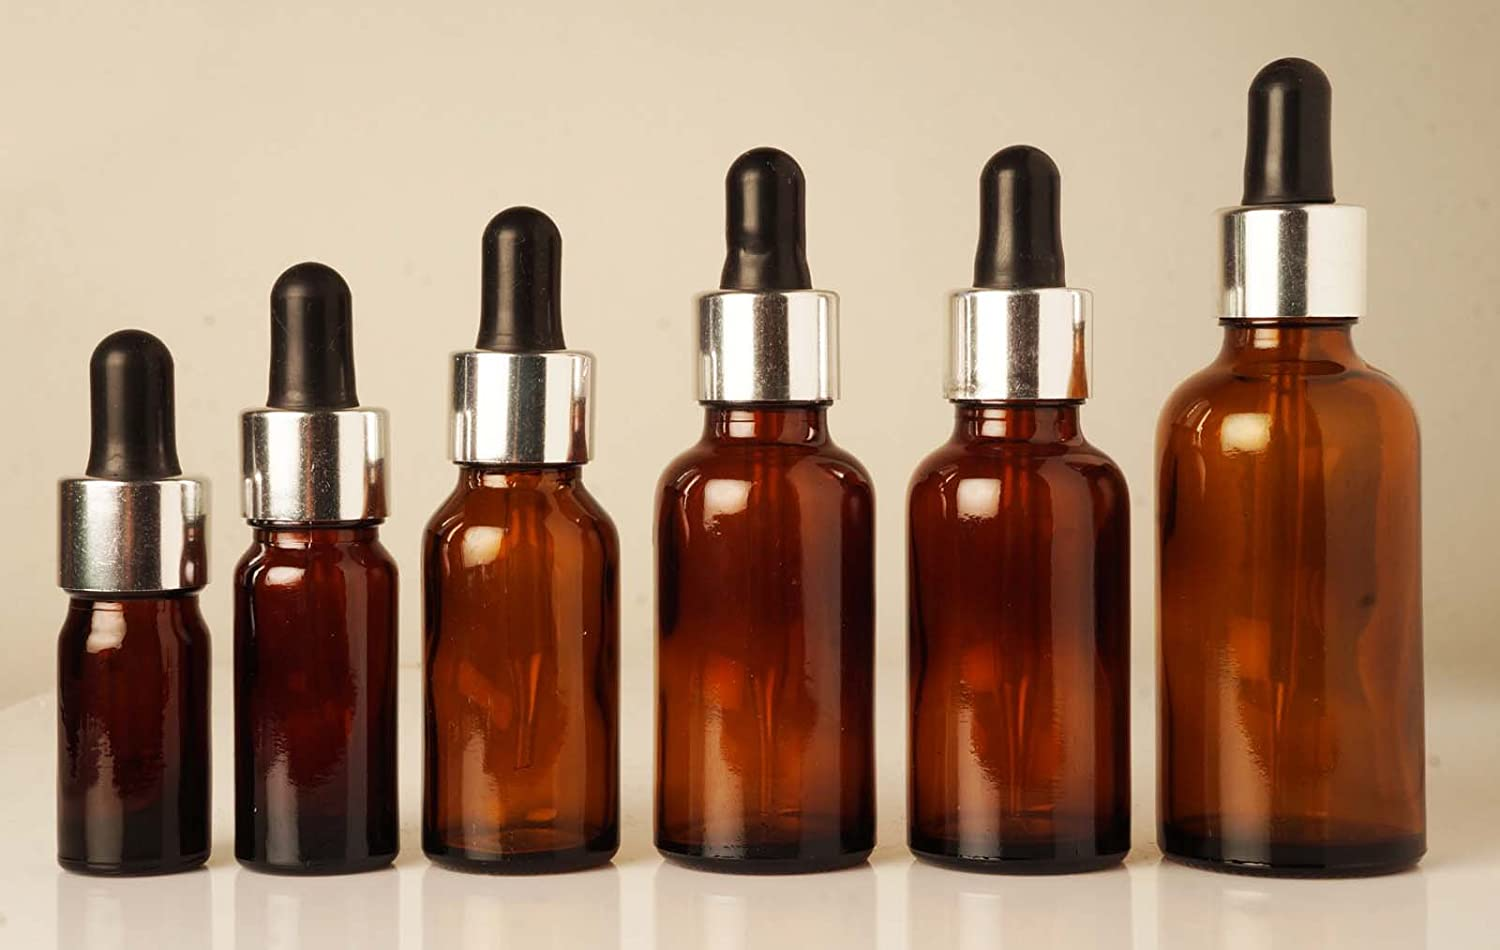 Lot of 6 x 10 ml Glass Bottles With Glass Dropper Pipettes Empty Esssential Oils Round Amber Bottles MT Bottles & Jars